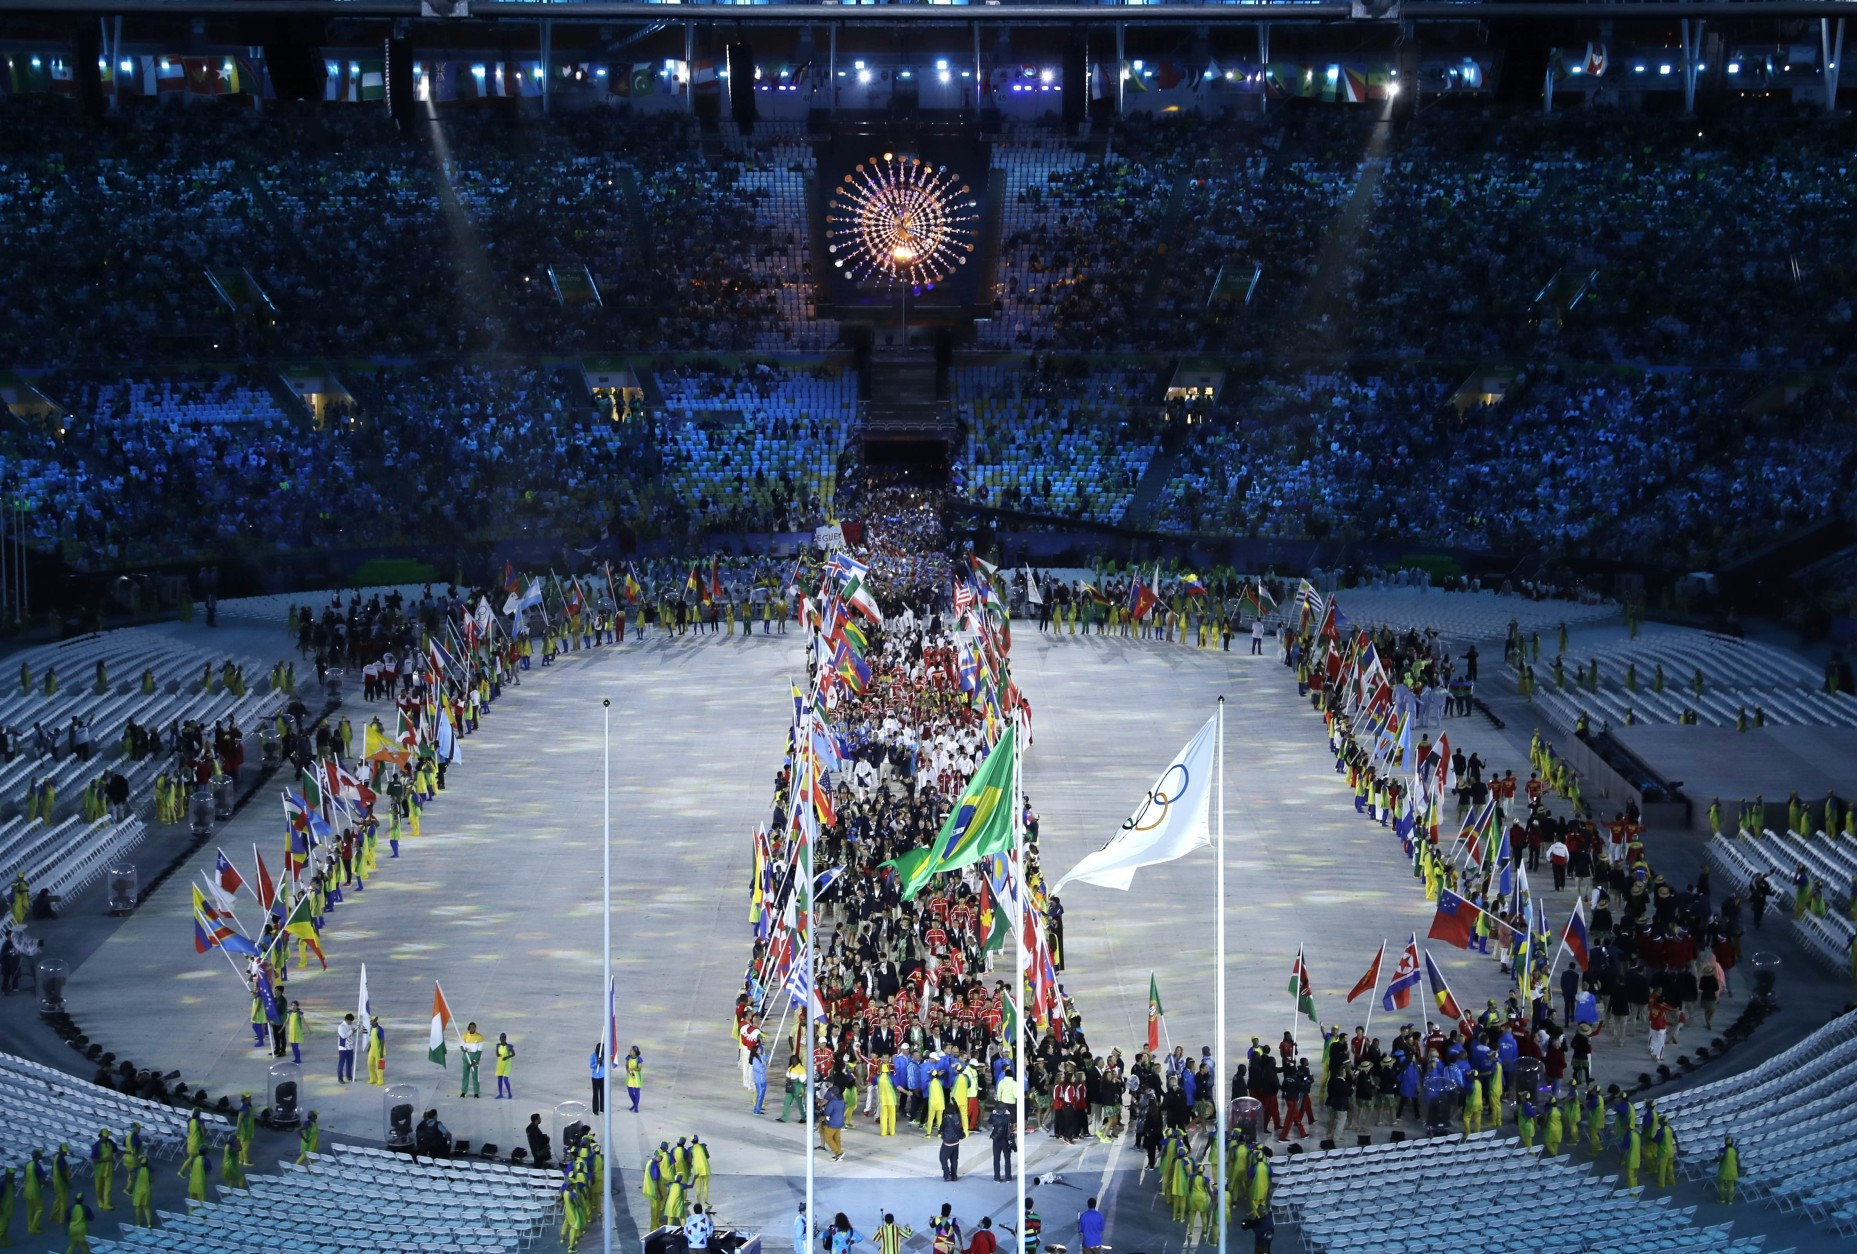 A parade of athletes enters the closing ceremony in the Maracana stadium at the 2016 Summer Olympics in Rio de Janeiro, Brazil, Sunday, Aug. 21, 2016. (AP Photo/Charlie Riedel)